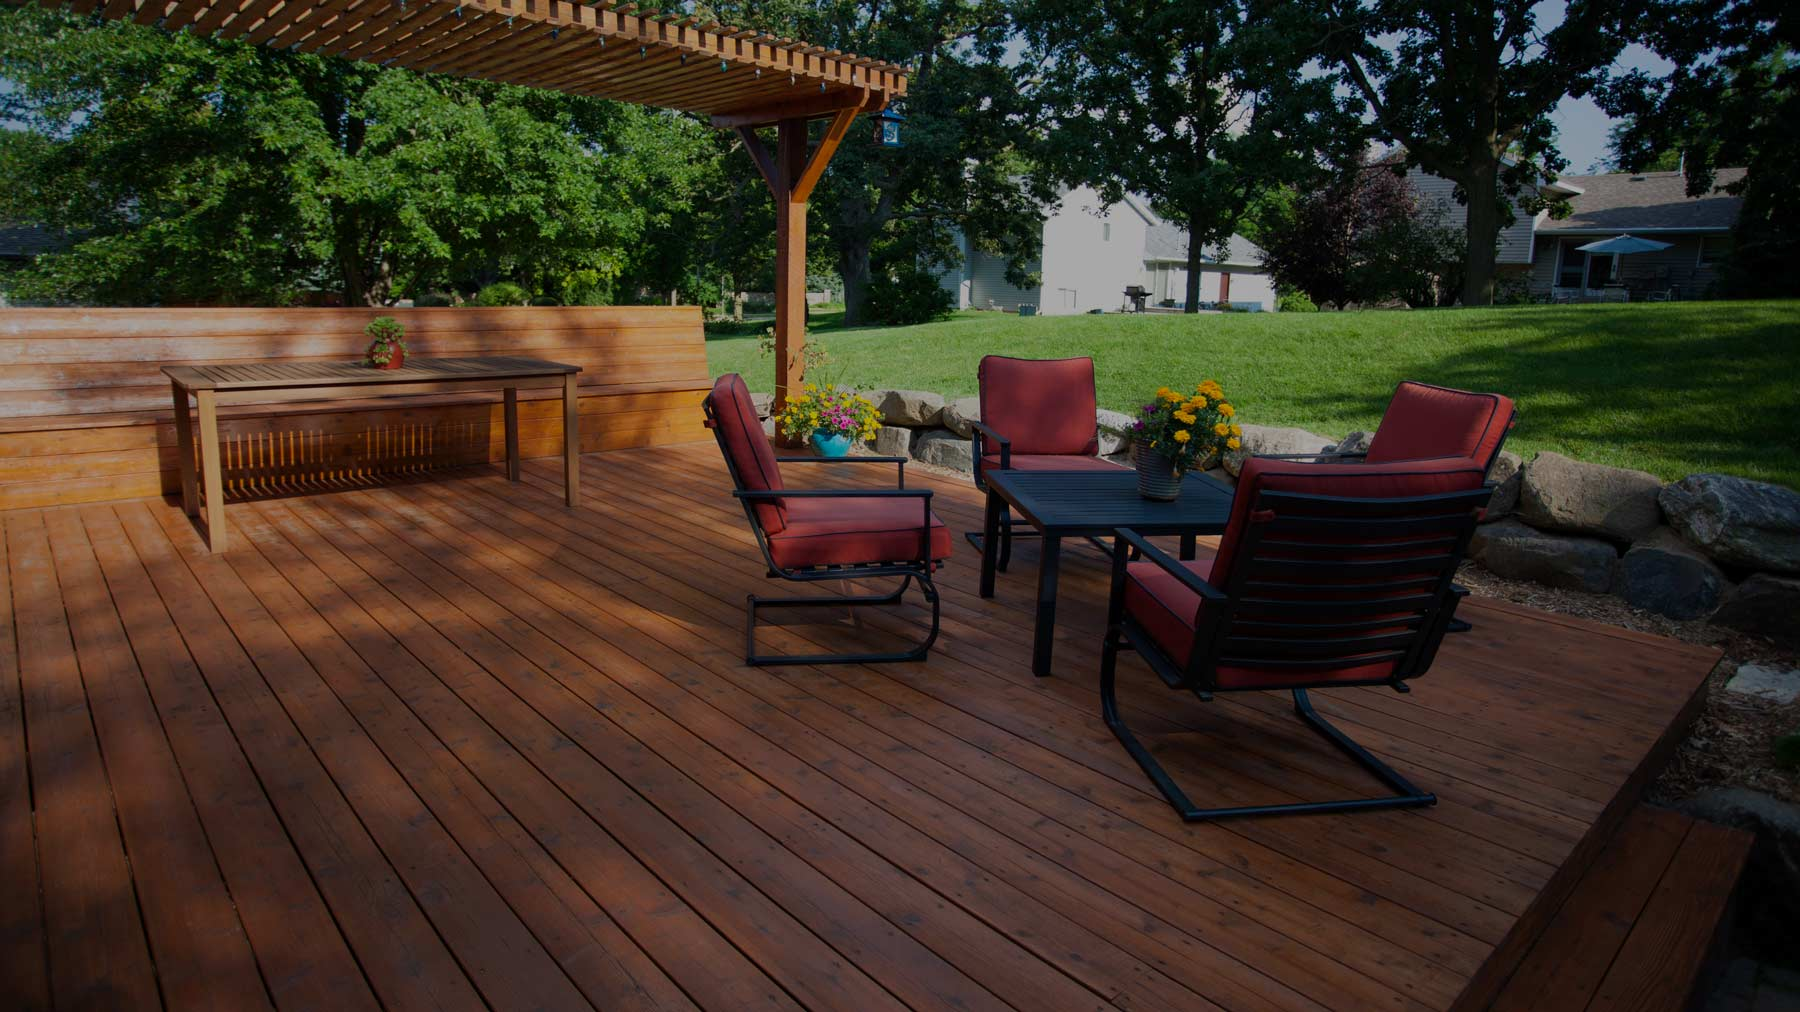 5 Tips for Designing an All-Season Deck